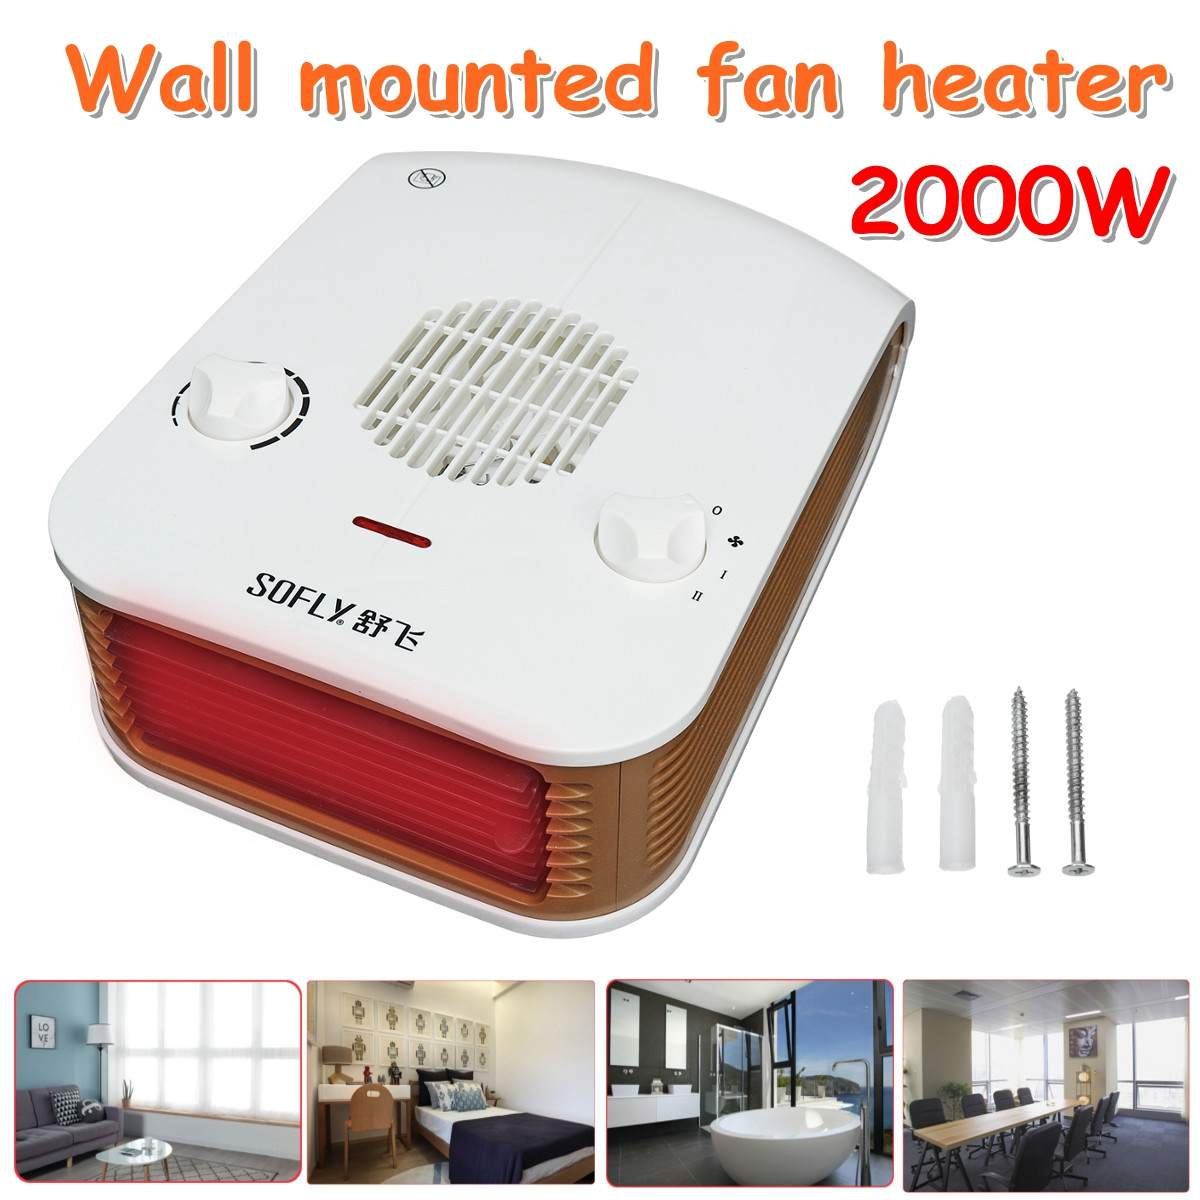 Multifunction 2000W Wall Mounted Fan Heater Knob Control/10 gear speed Household Warm Bathroom Bedroom Heater WaterproofMultifunction 2000W Wall Mounted Fan Heater Knob Control/10 gear speed Household Warm Bathroom Bedroom Heater Waterproof